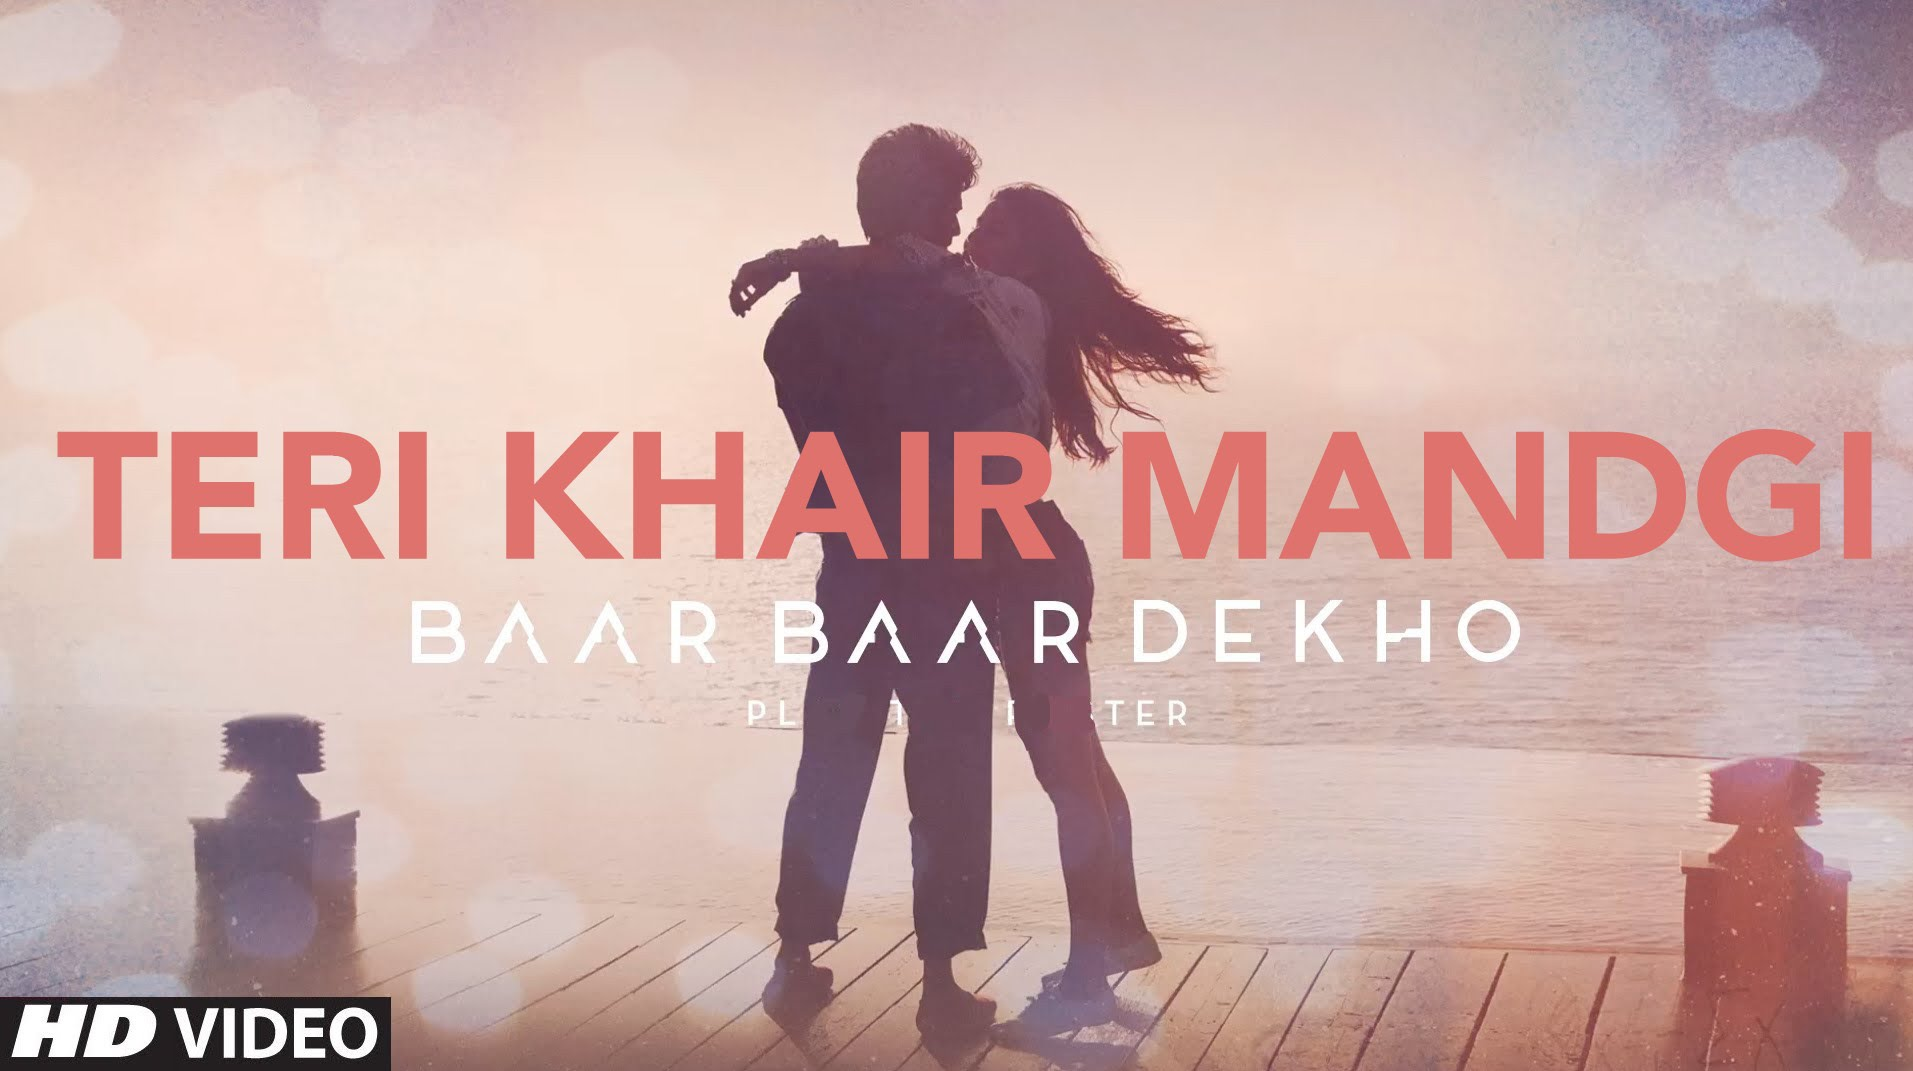 Teri-Khair-Mangdi-Baar-Baar-Dekho-Mp3-Download